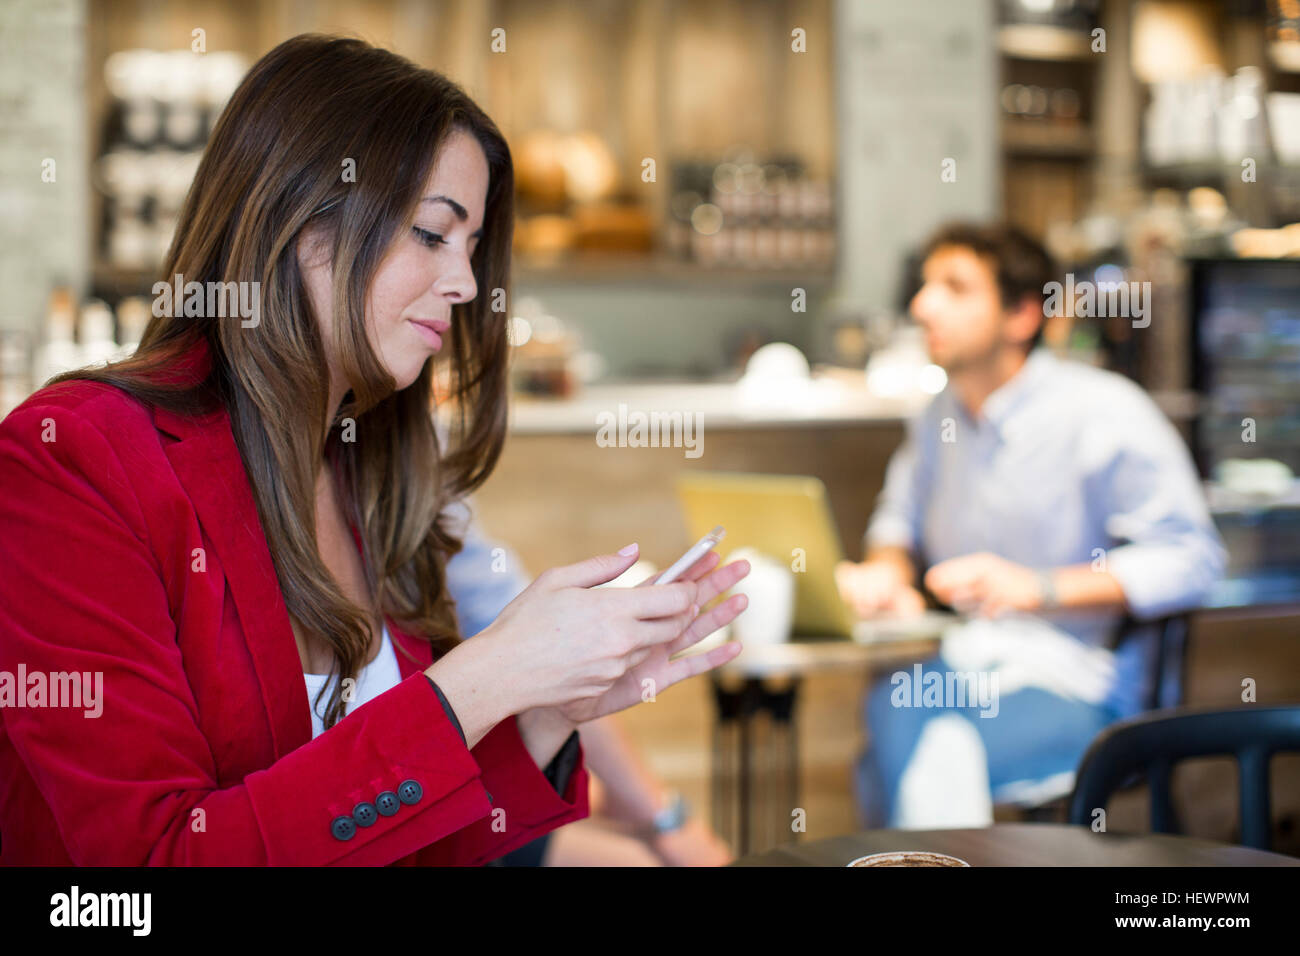 Young woman reading smartphone texts in cafe - Stock Image